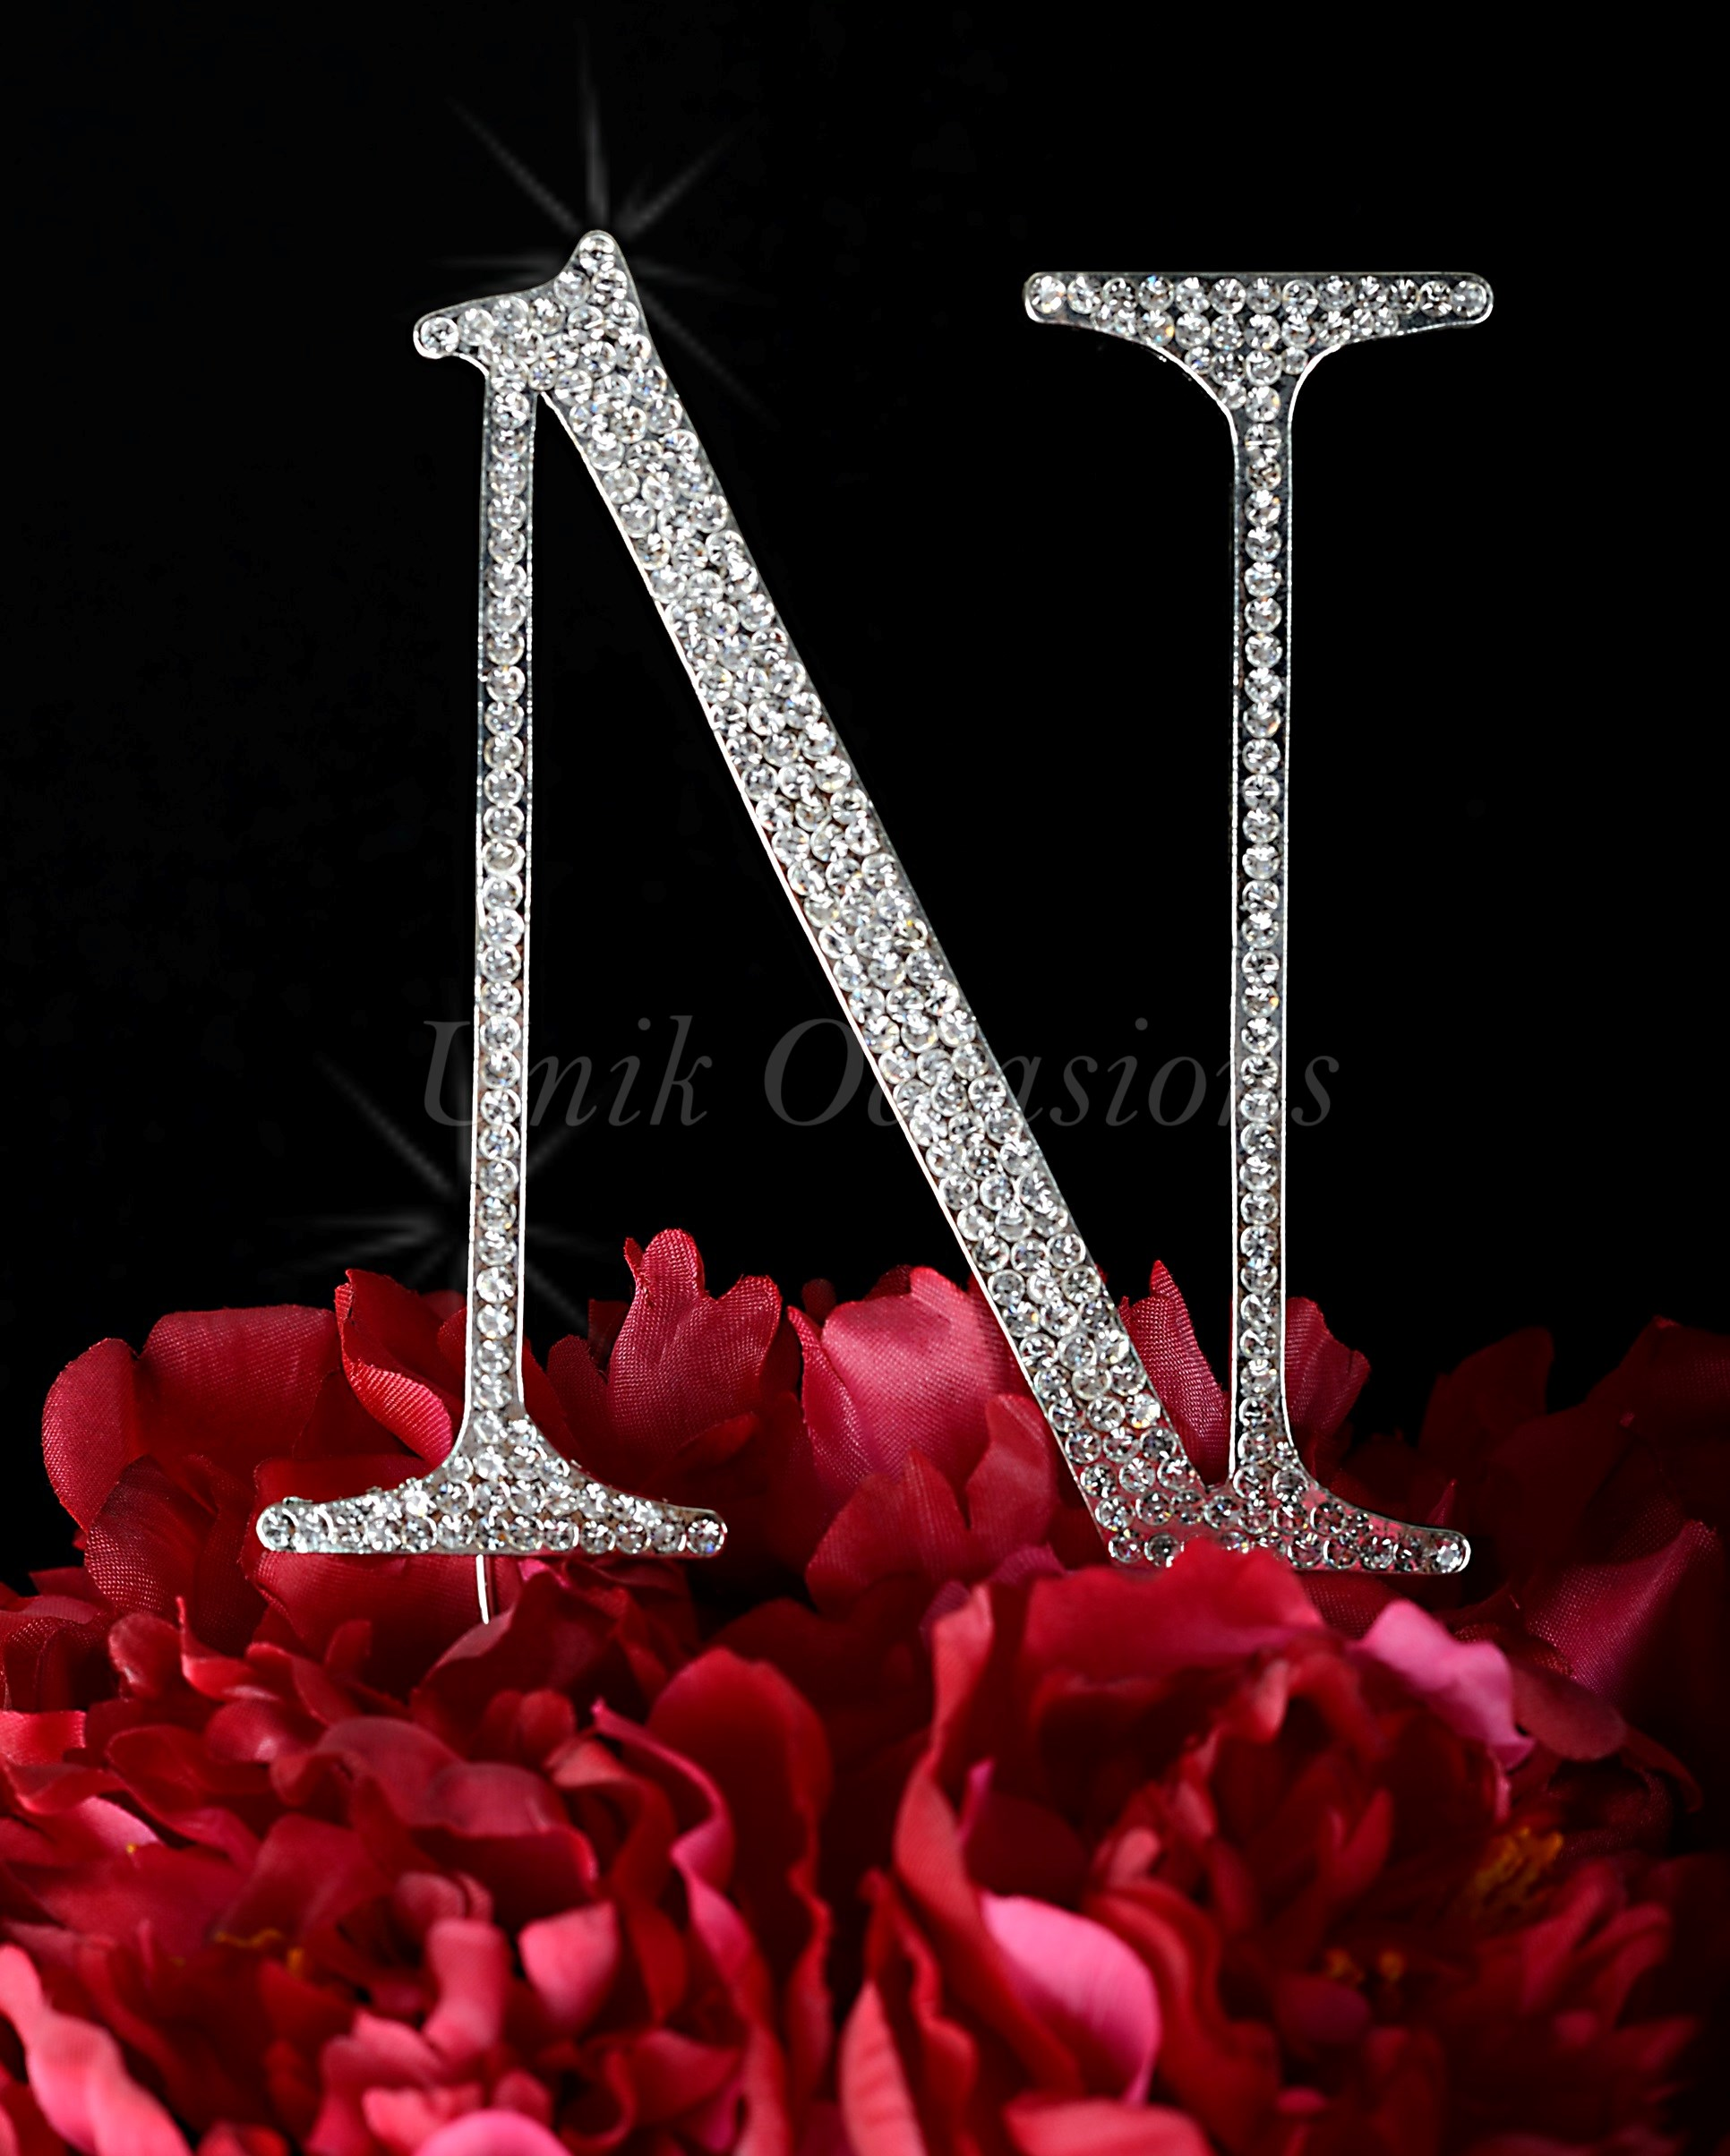 Silver Unik Occasions Collection Crystal Rhinestone Wedding Cake Topper Large Letter U